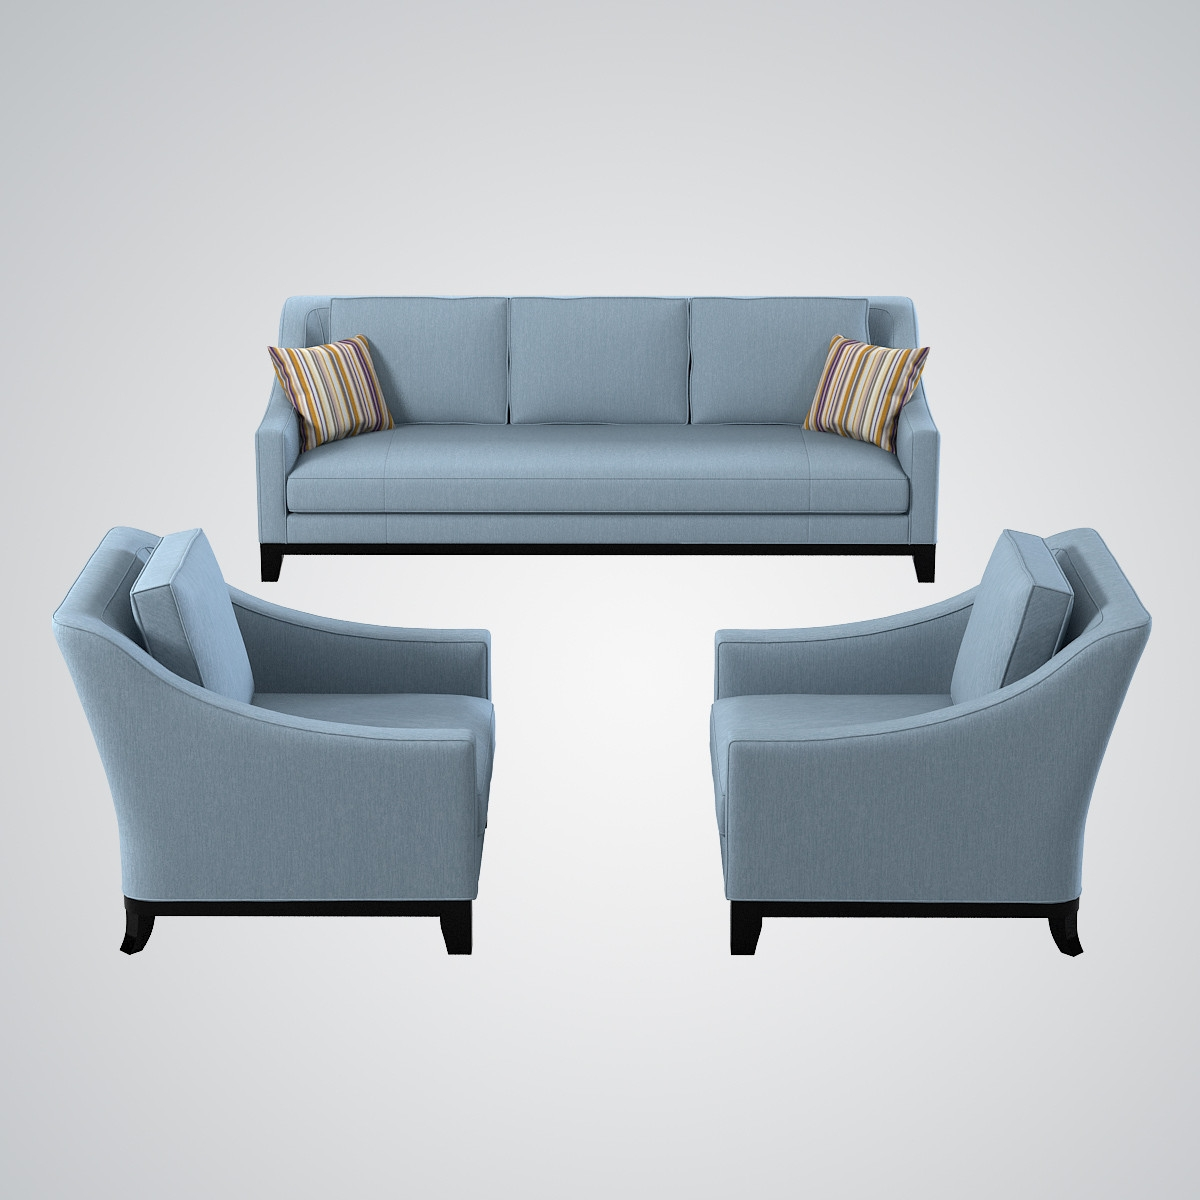 Model Baker Neue Sofa Chair With Regard To Sofa And Chair Set (Image 9 of 15)